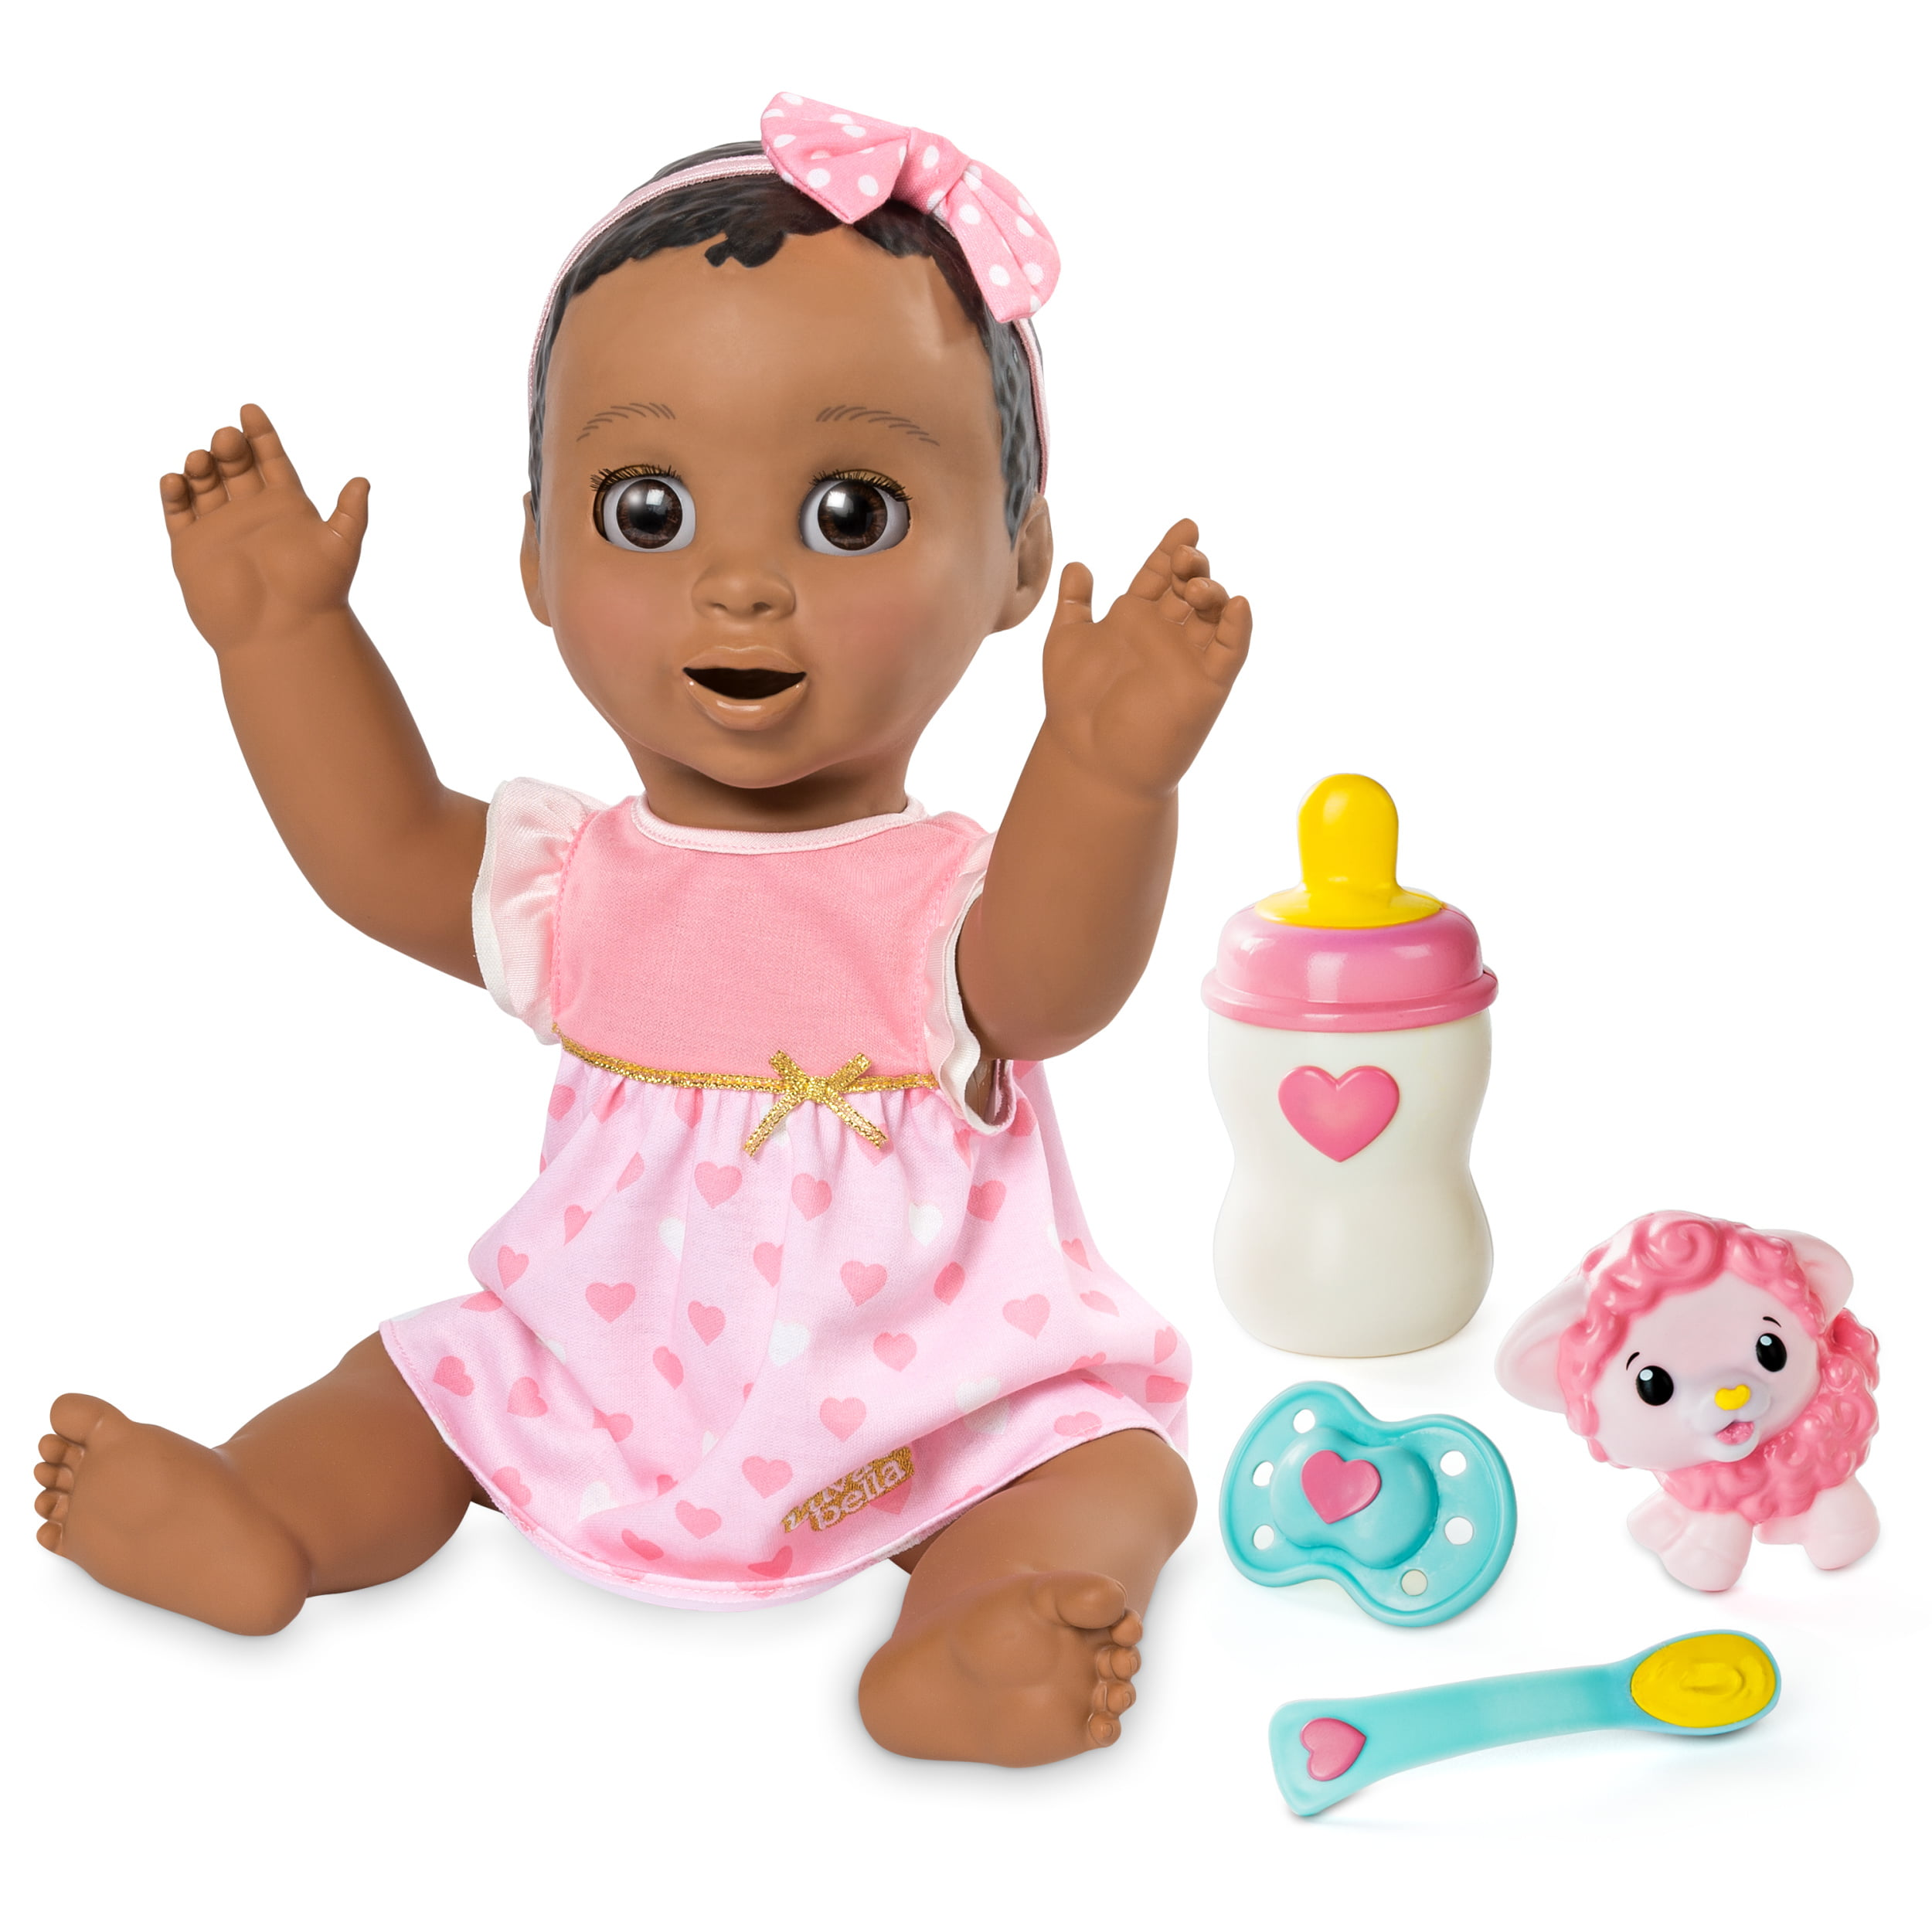 Luvabella Dark Brown Hair Responsive Baby Doll with Realistic Expressions and Movement by Spin Master Ltd